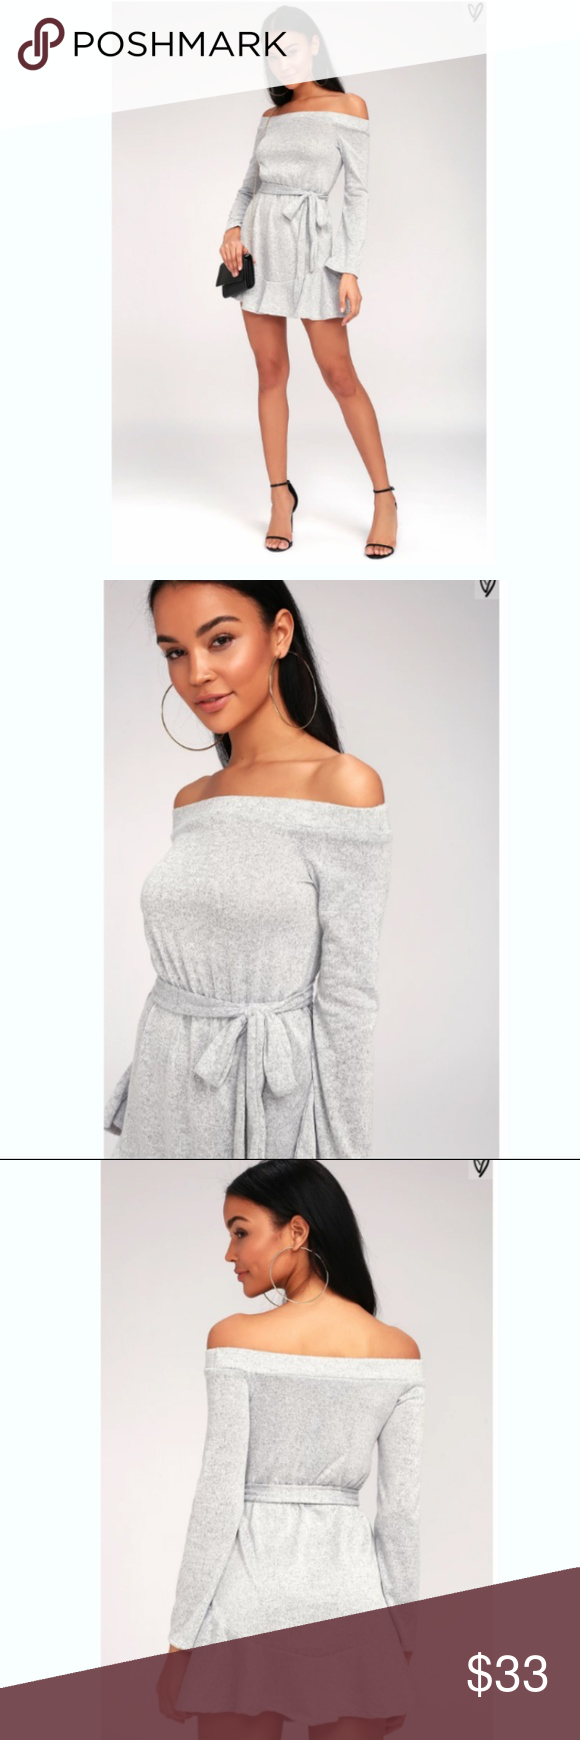 d7a0cbcebc8 NWT Lulus Cute Grey Off Shoulder Sweater Dress This dress is NEW with tags!  Originally bought for  65! An elasticized